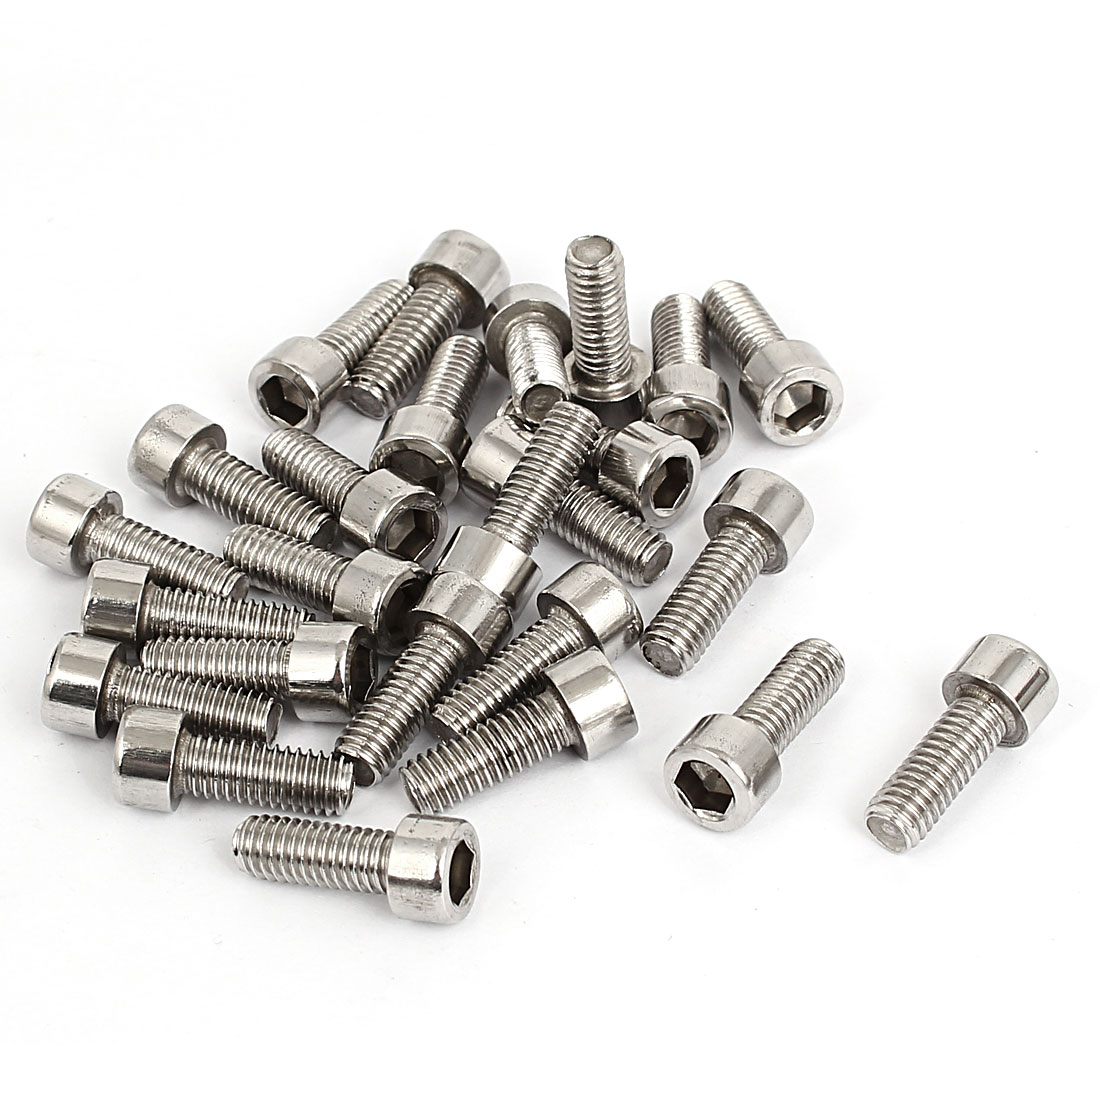 25pcs 5mm Stainless Steel Hex Key Socket Head Cap Screws Bolts M6x1mmx16mm